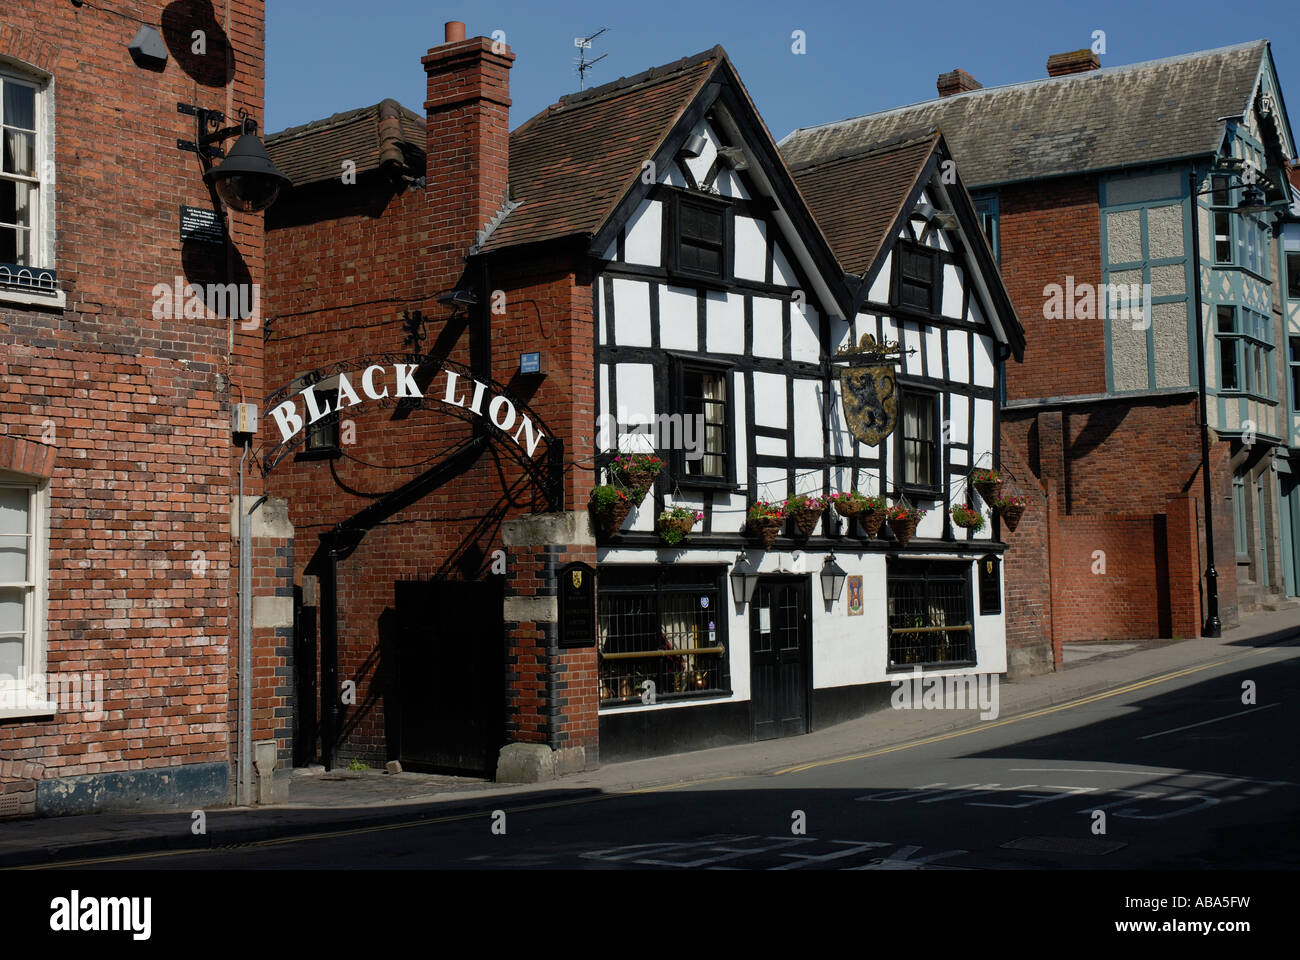 The Black Lion public house, Hereford. - Stock Image